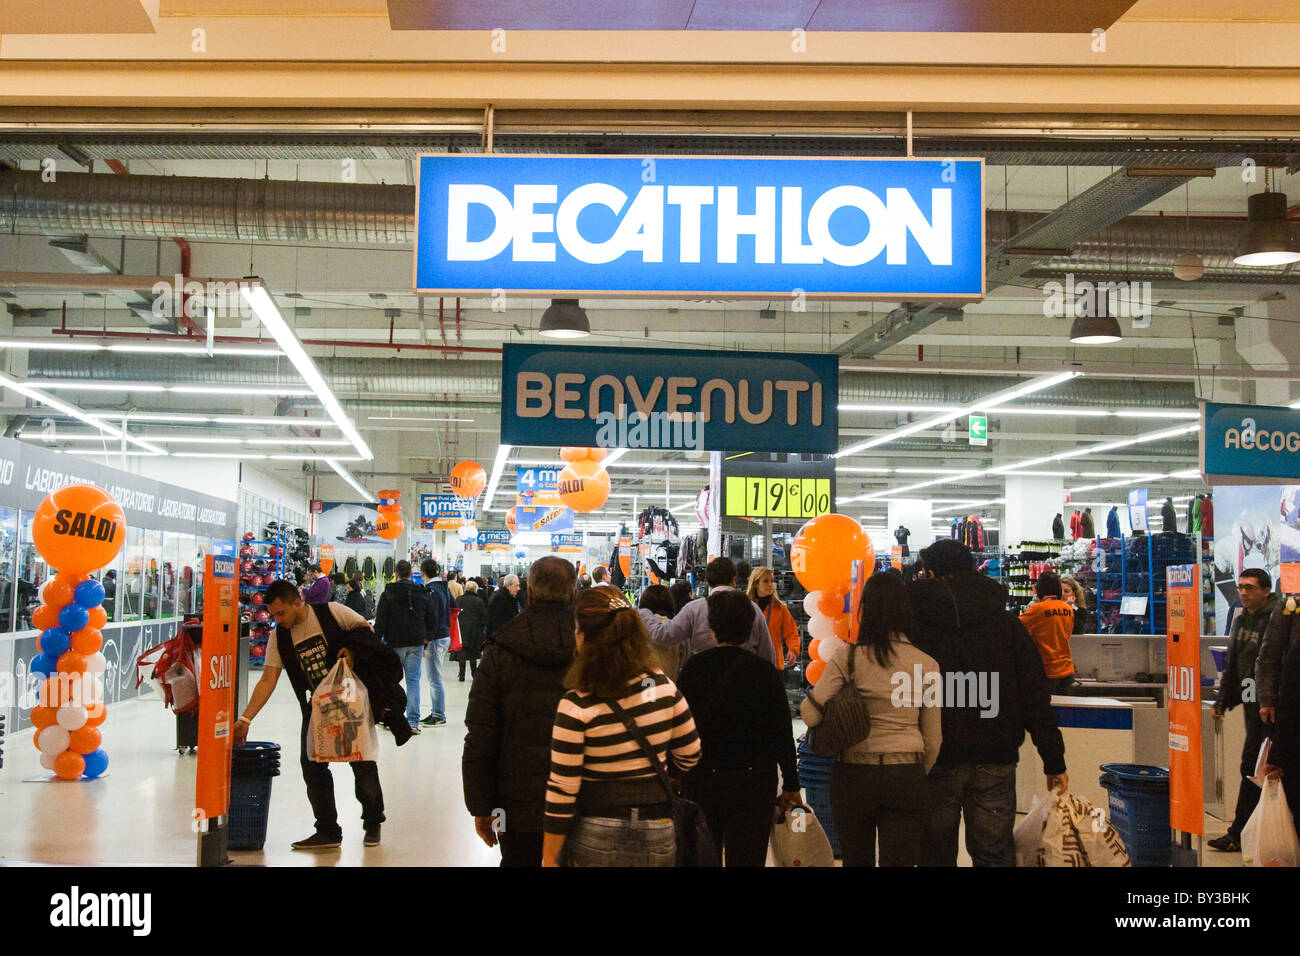 Decathlon india online sports shop